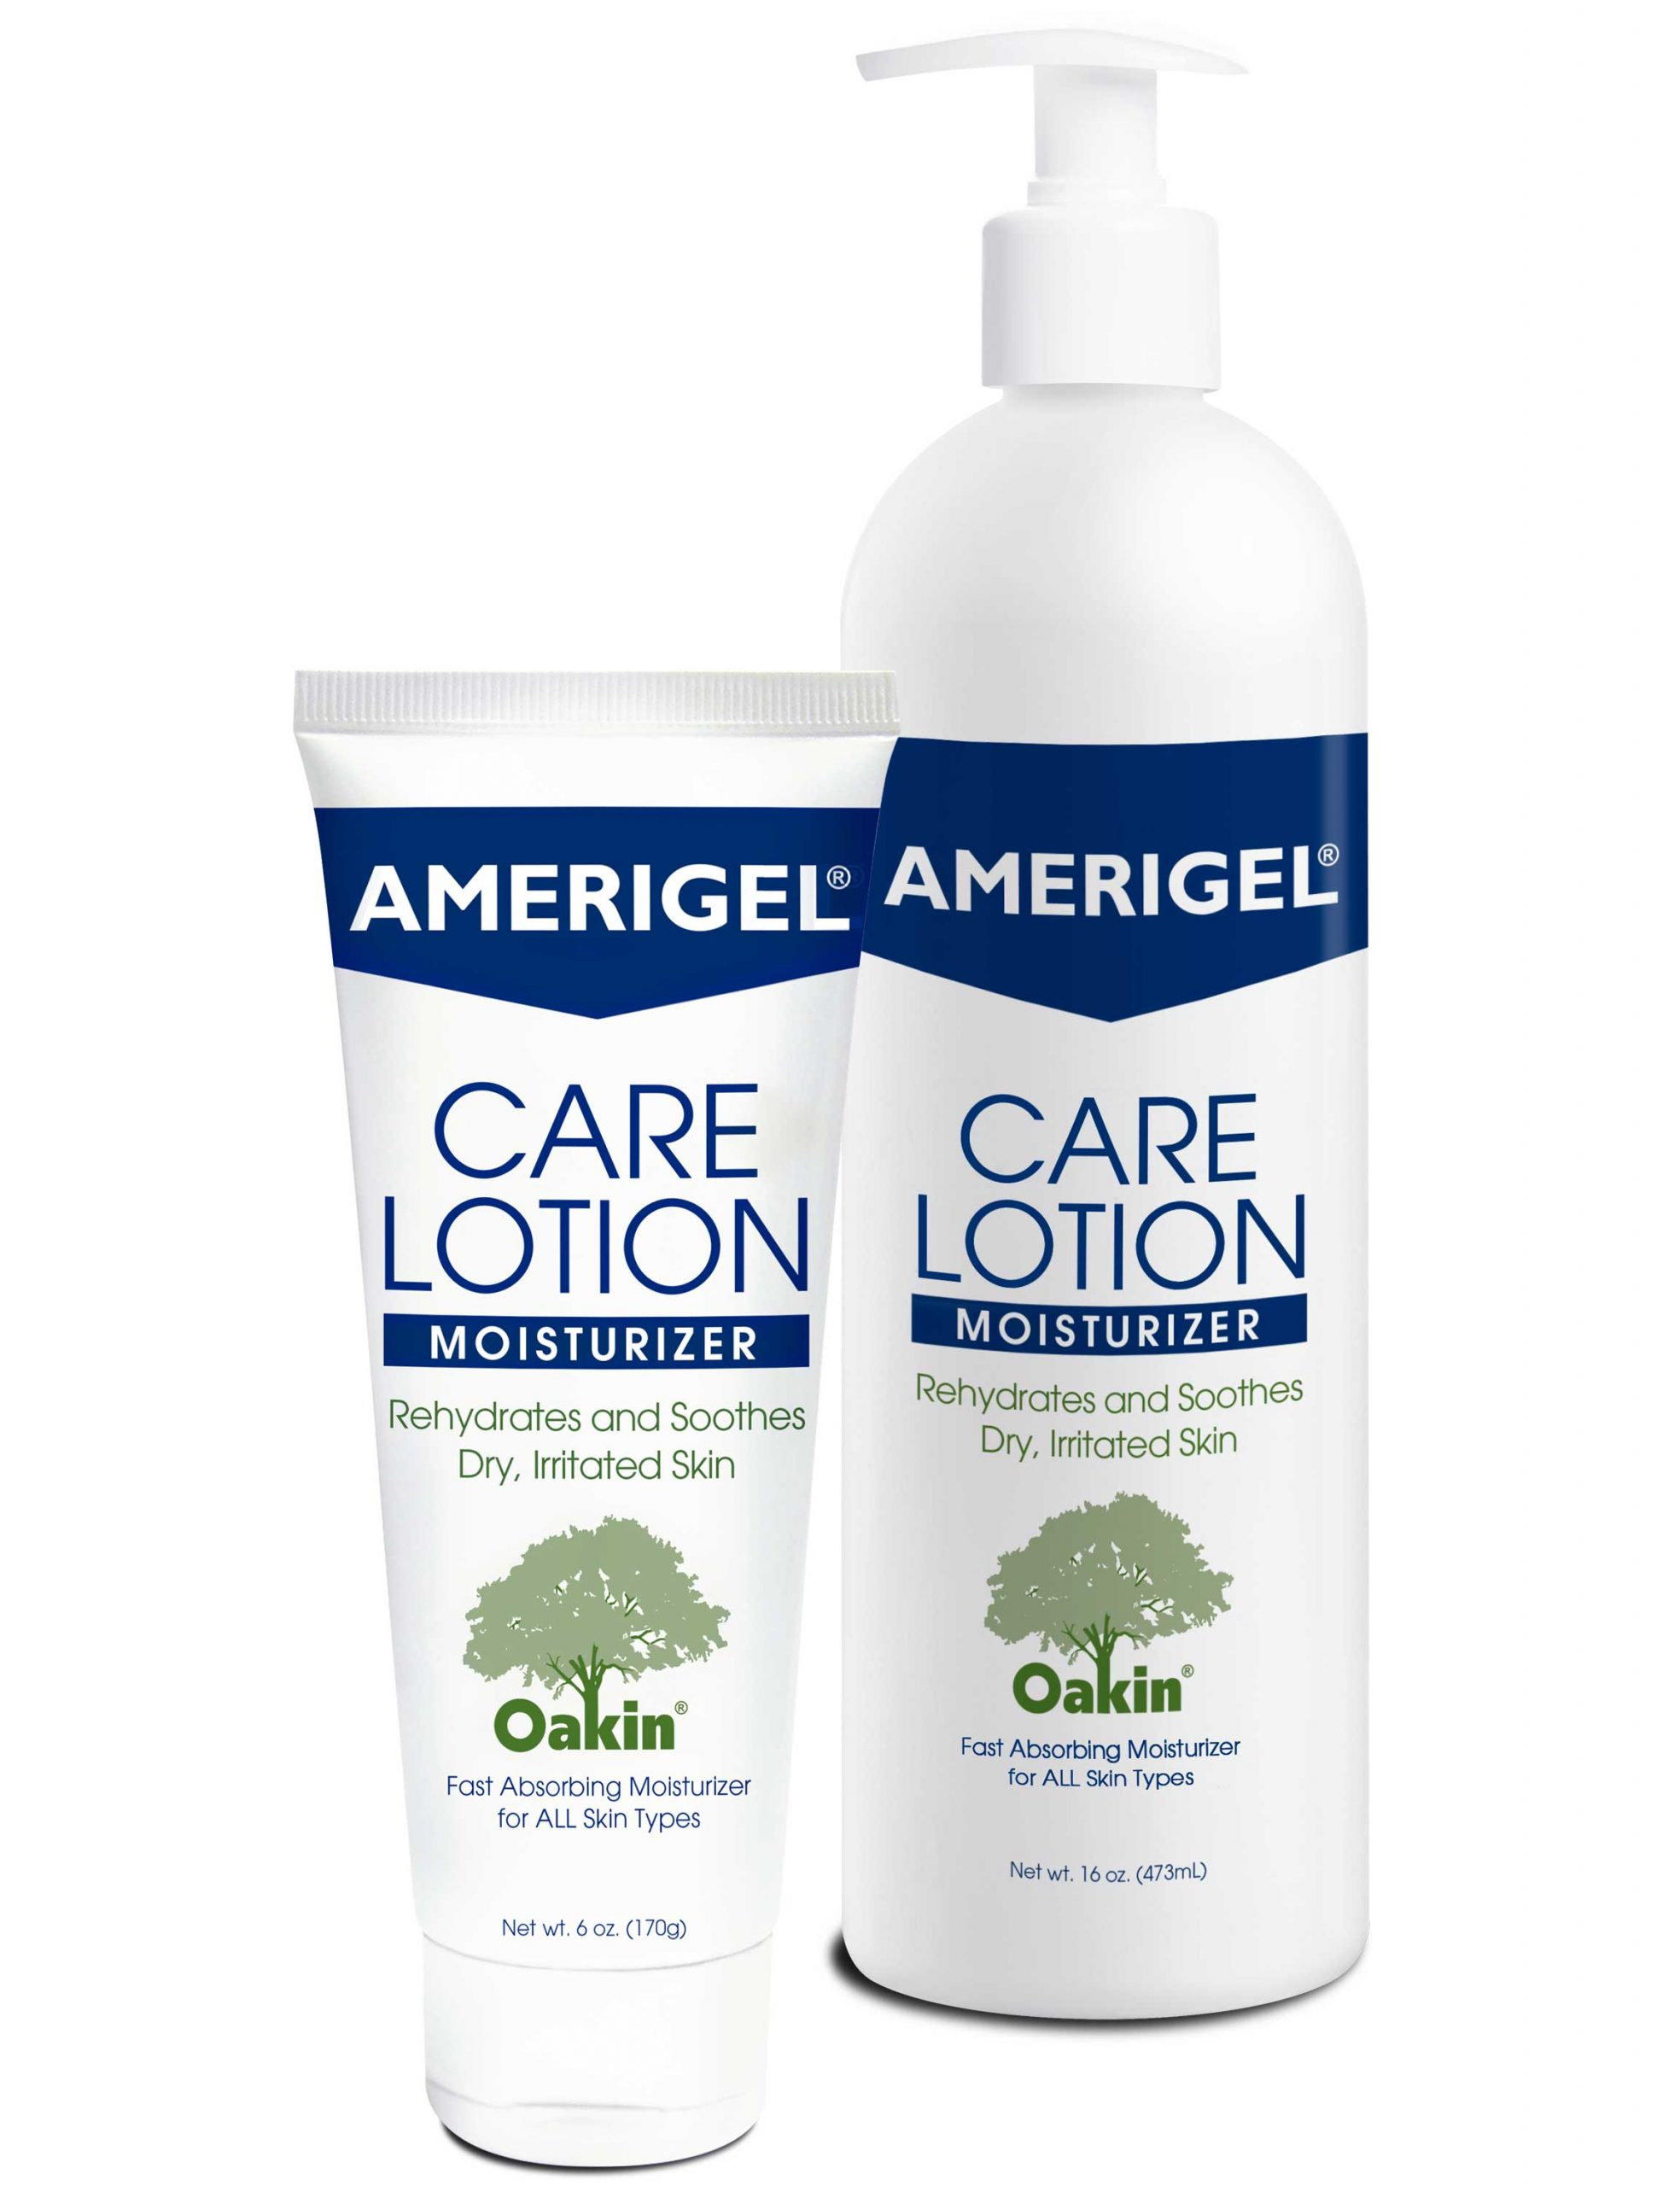 6 oz. tube and 16 oz. pump bottle of AMERIGEL Care Lotion